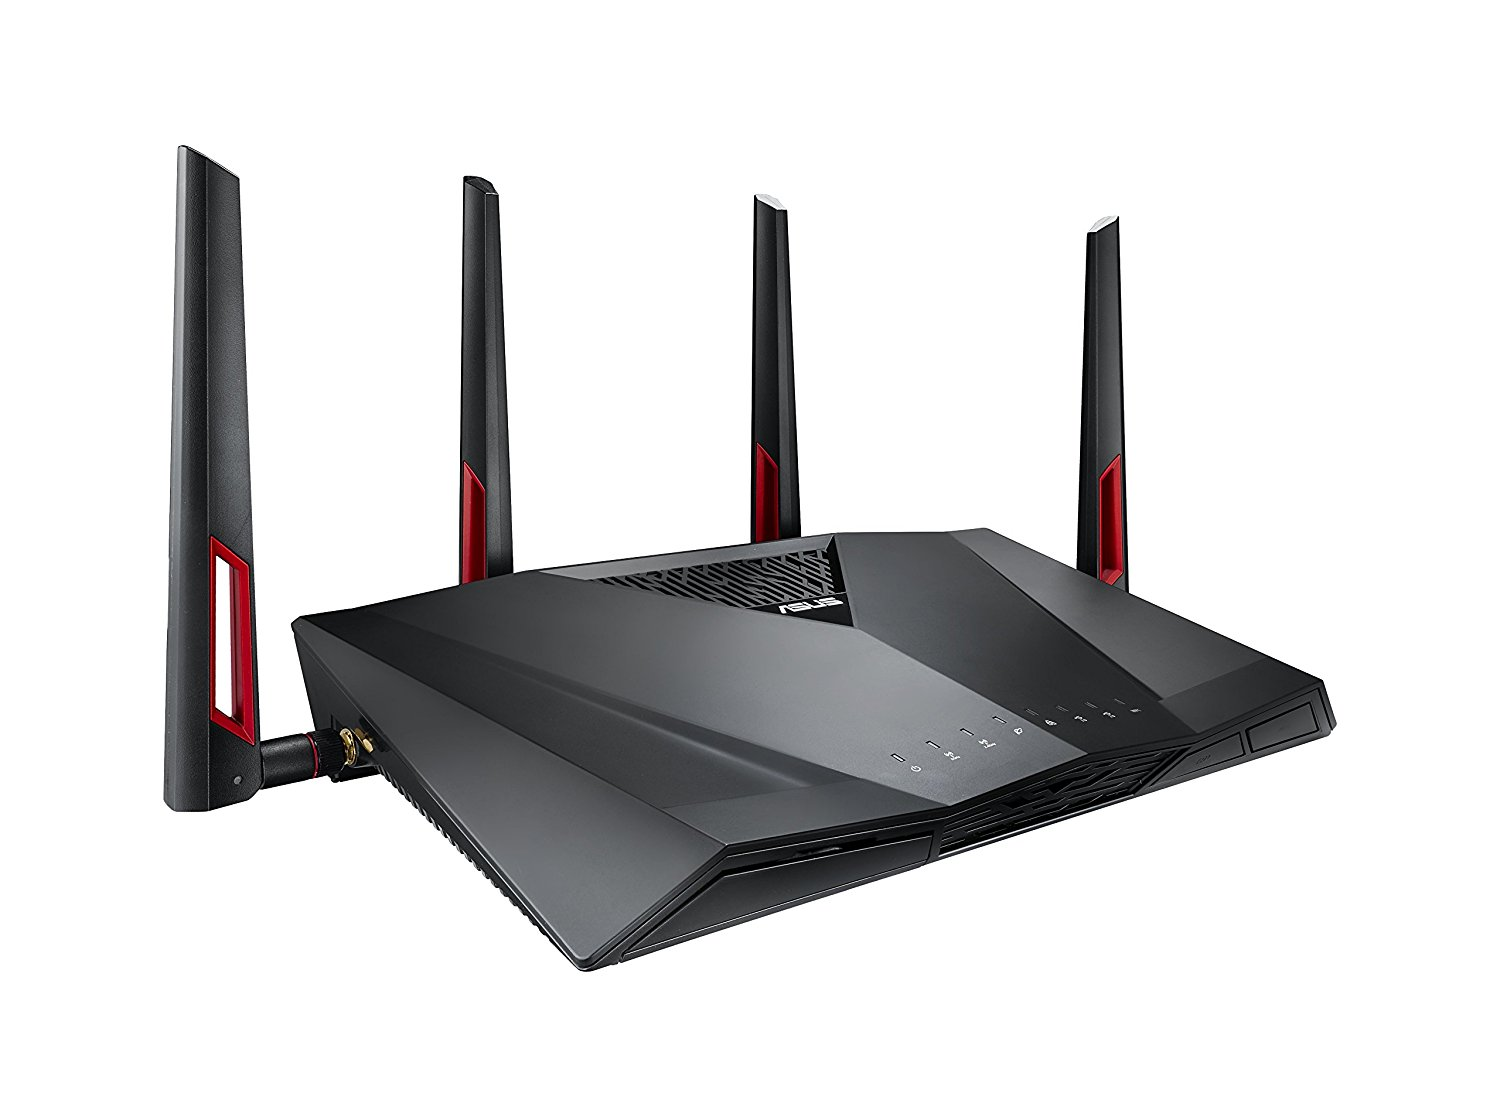 ASUS AC3100 WiFi Dual-band Gigabit Wireless Router